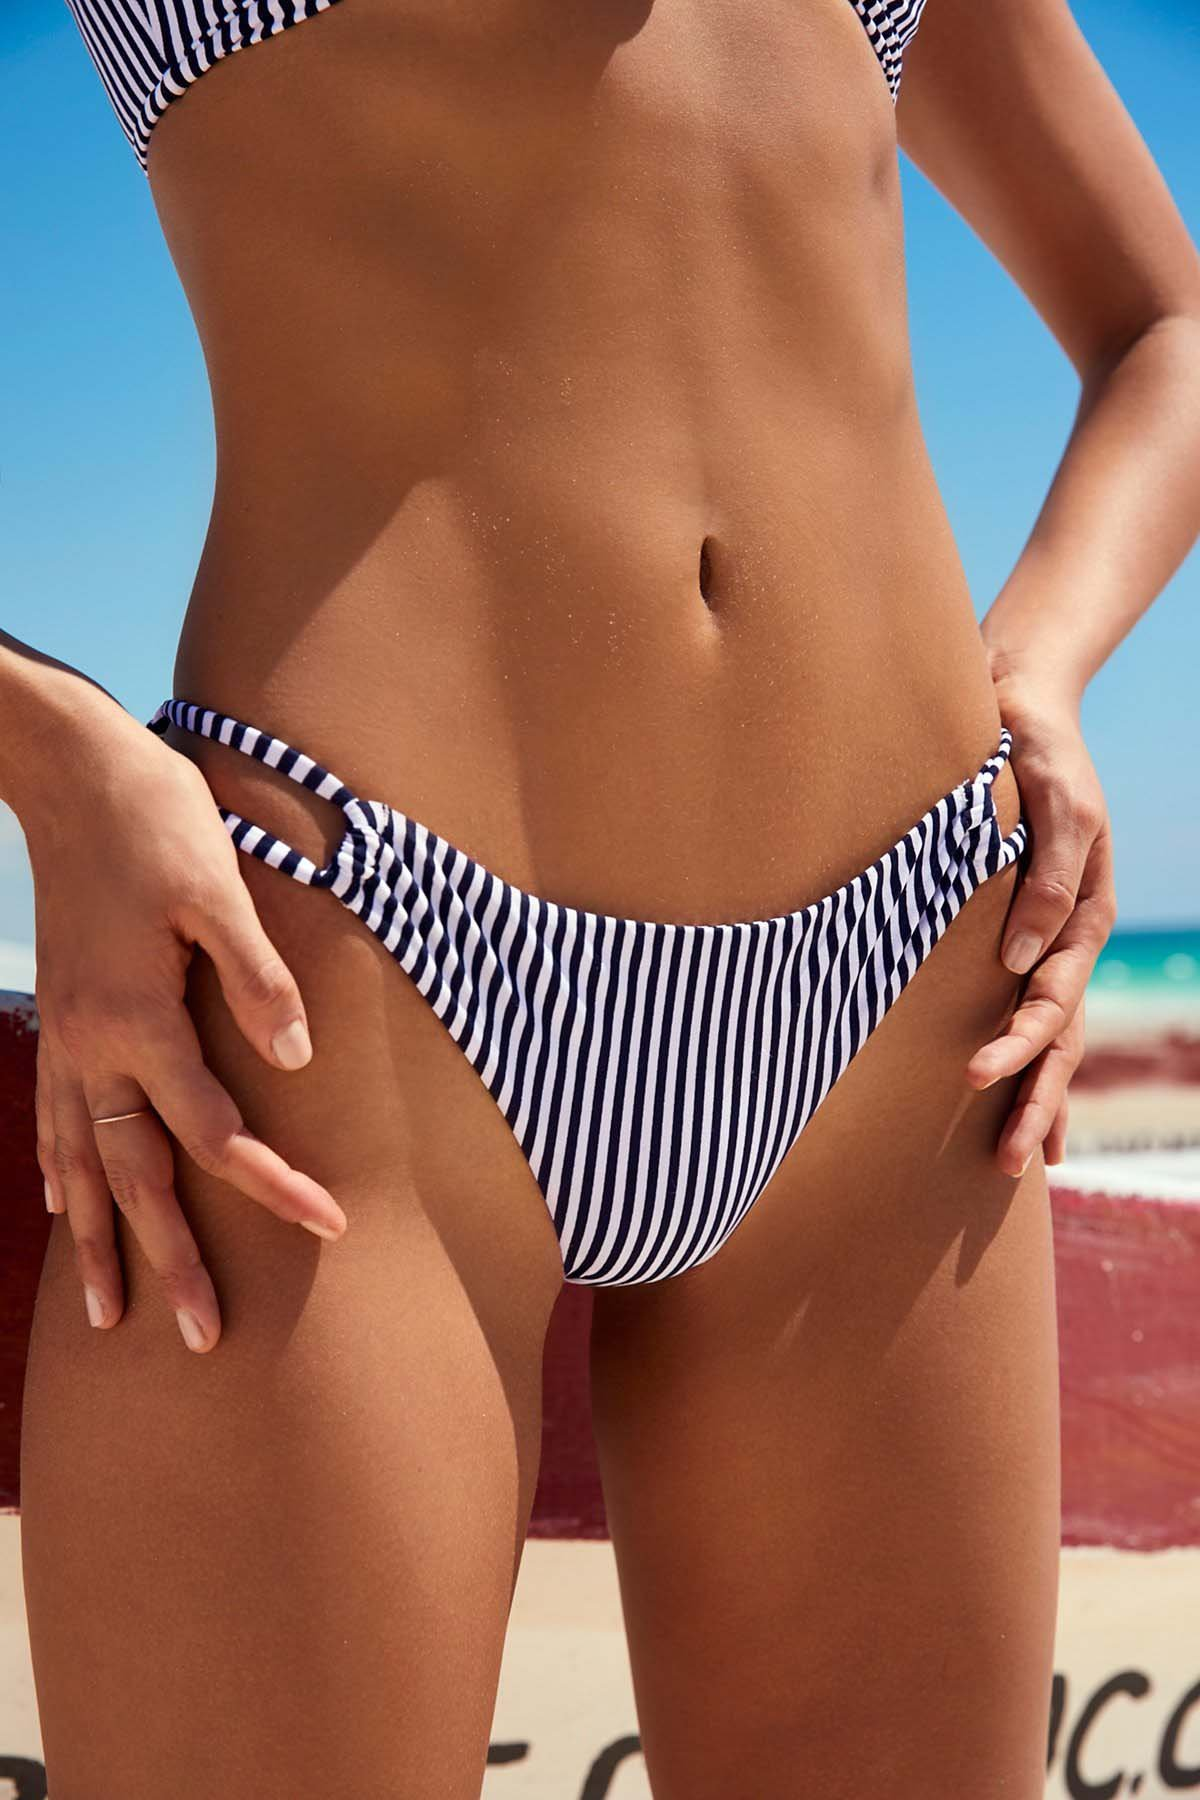 BMJL Women's Sexy Detachable Padded Cutout Push Up Striped Bikini Set Two Piece Swimsuit (M,Navy & White) by BMJL (Image #3)